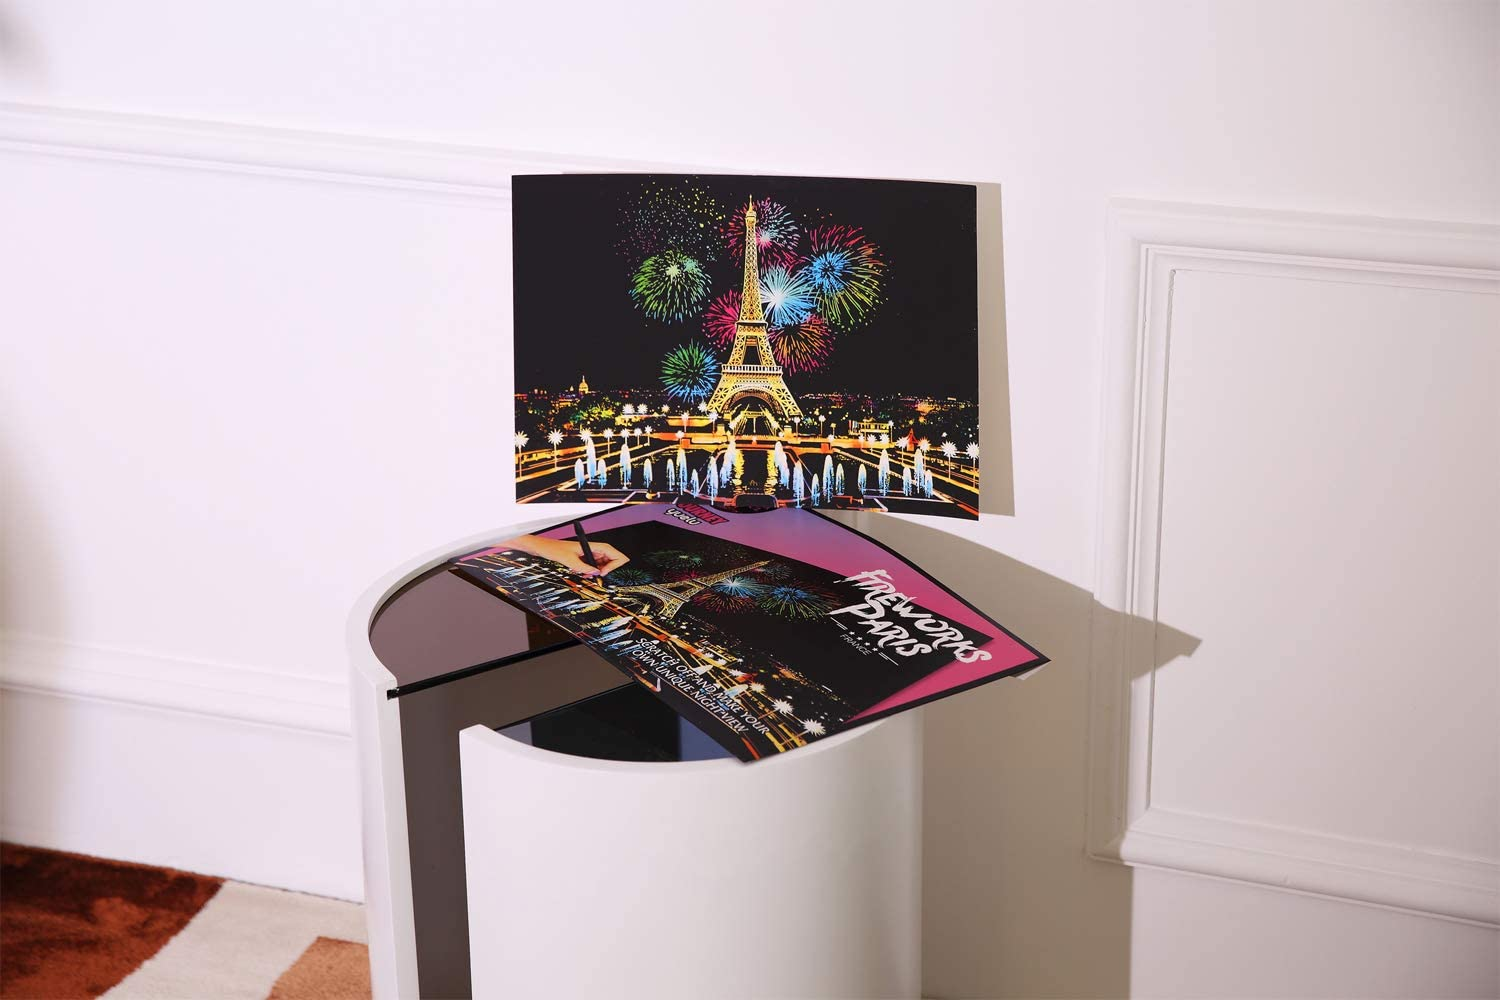 Scratch Art for Adults Scratch Paper Rainbow Painting Sketch Pads DIY Art Craft Night View Scratchboard with Clean Brush,Scratch Coloring Pen,16 X 11.2 Inches Fireworks Paris